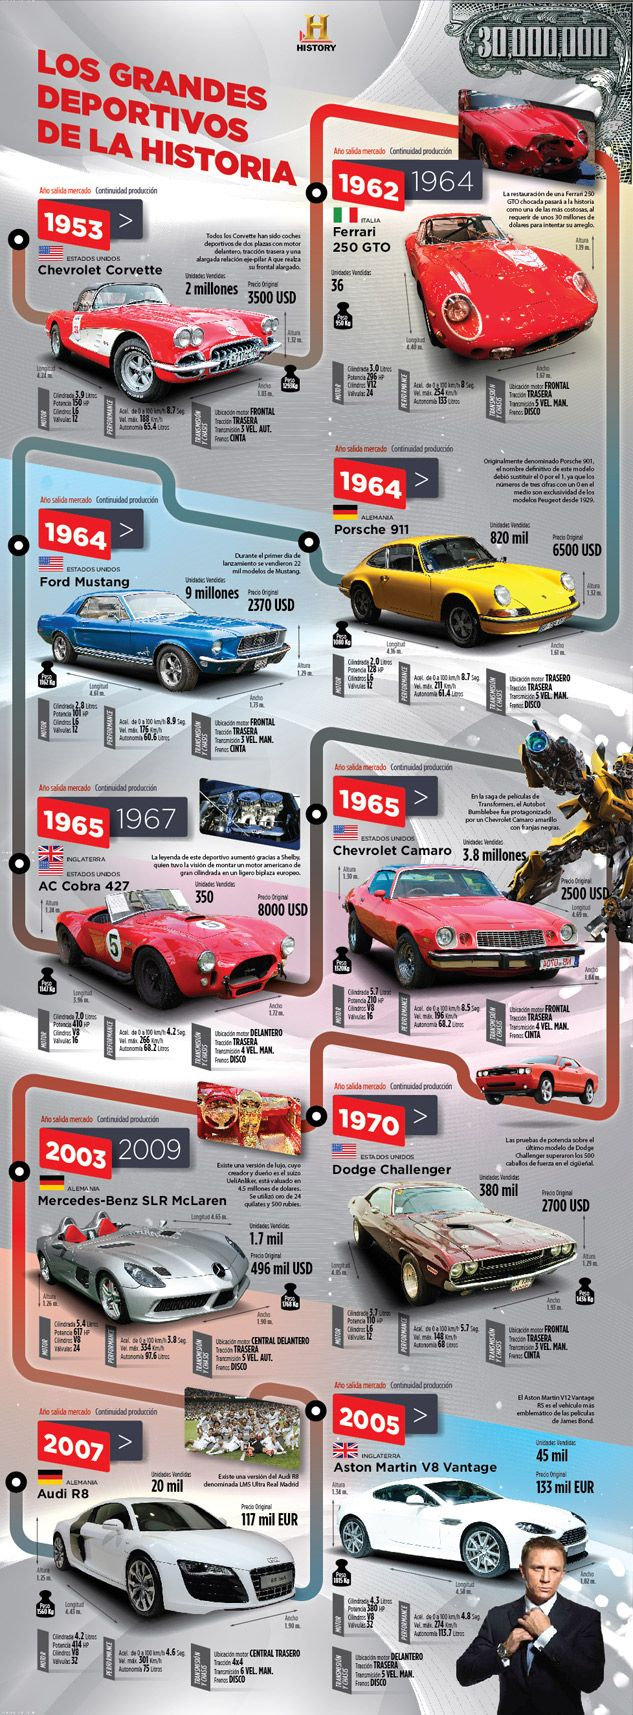 103 best top gear rocks images on pinterest top gear bbc grand tour and jeremy clarkson